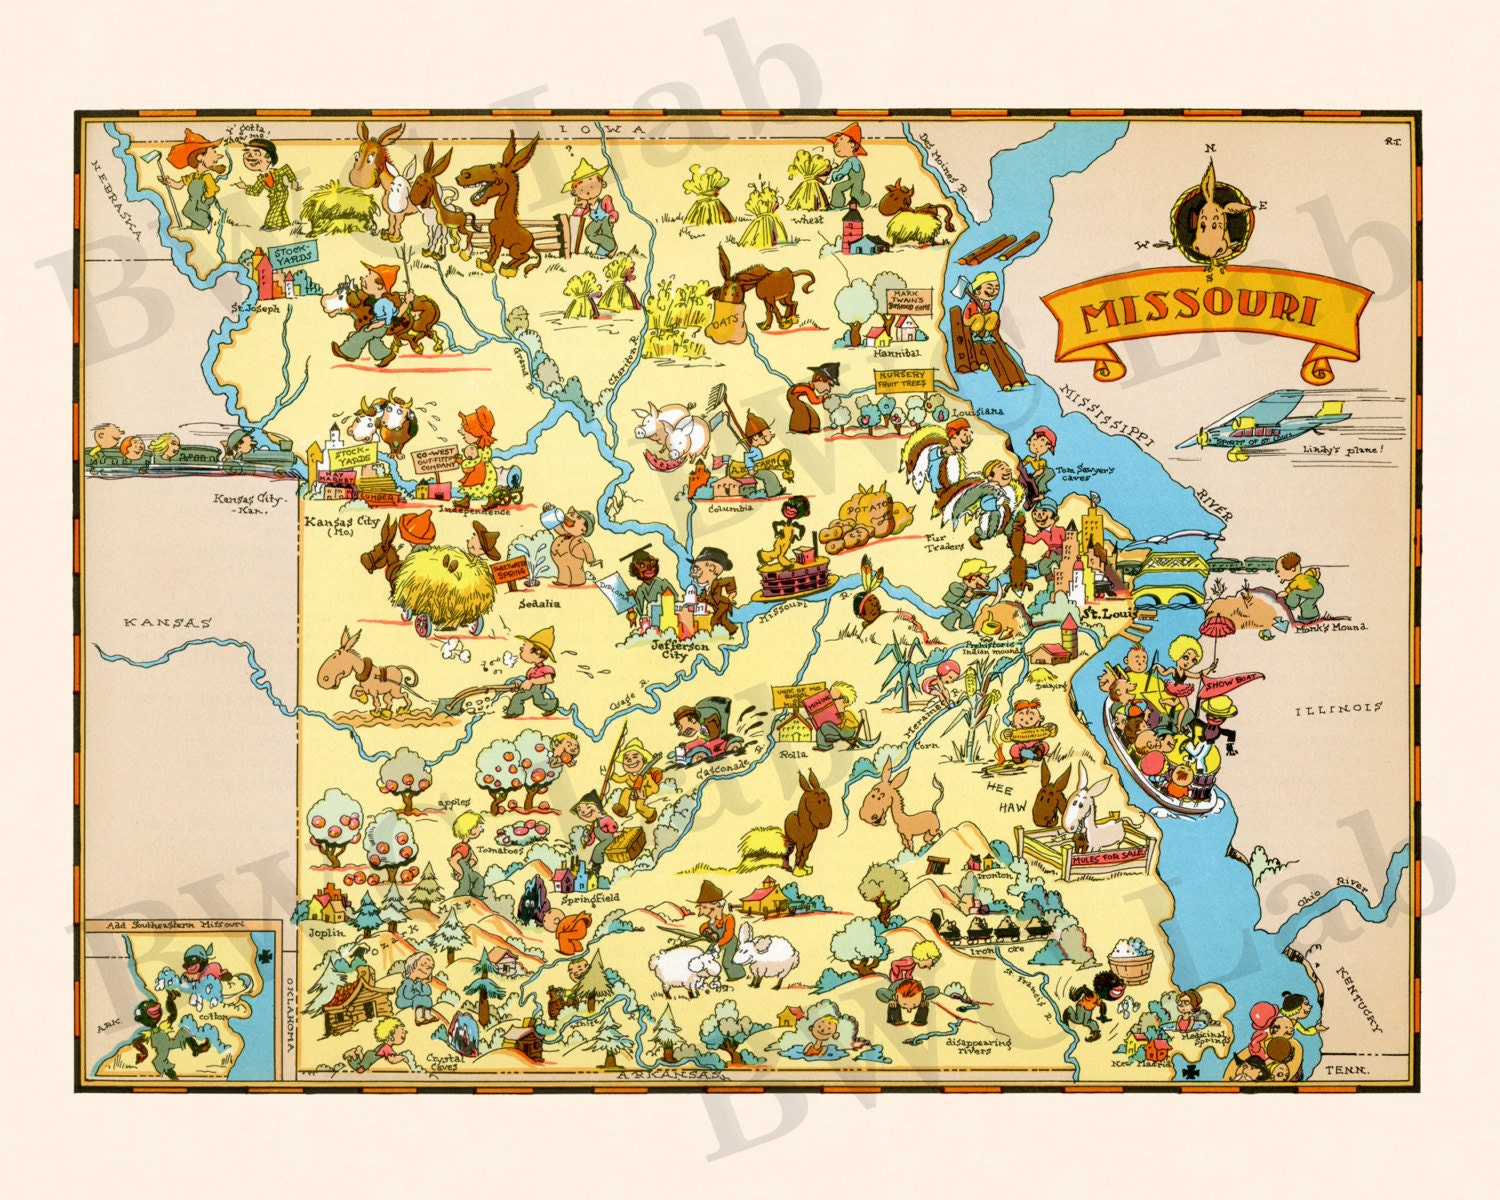 Pictorial Map of Missouri colorful fun illustration of | Etsy